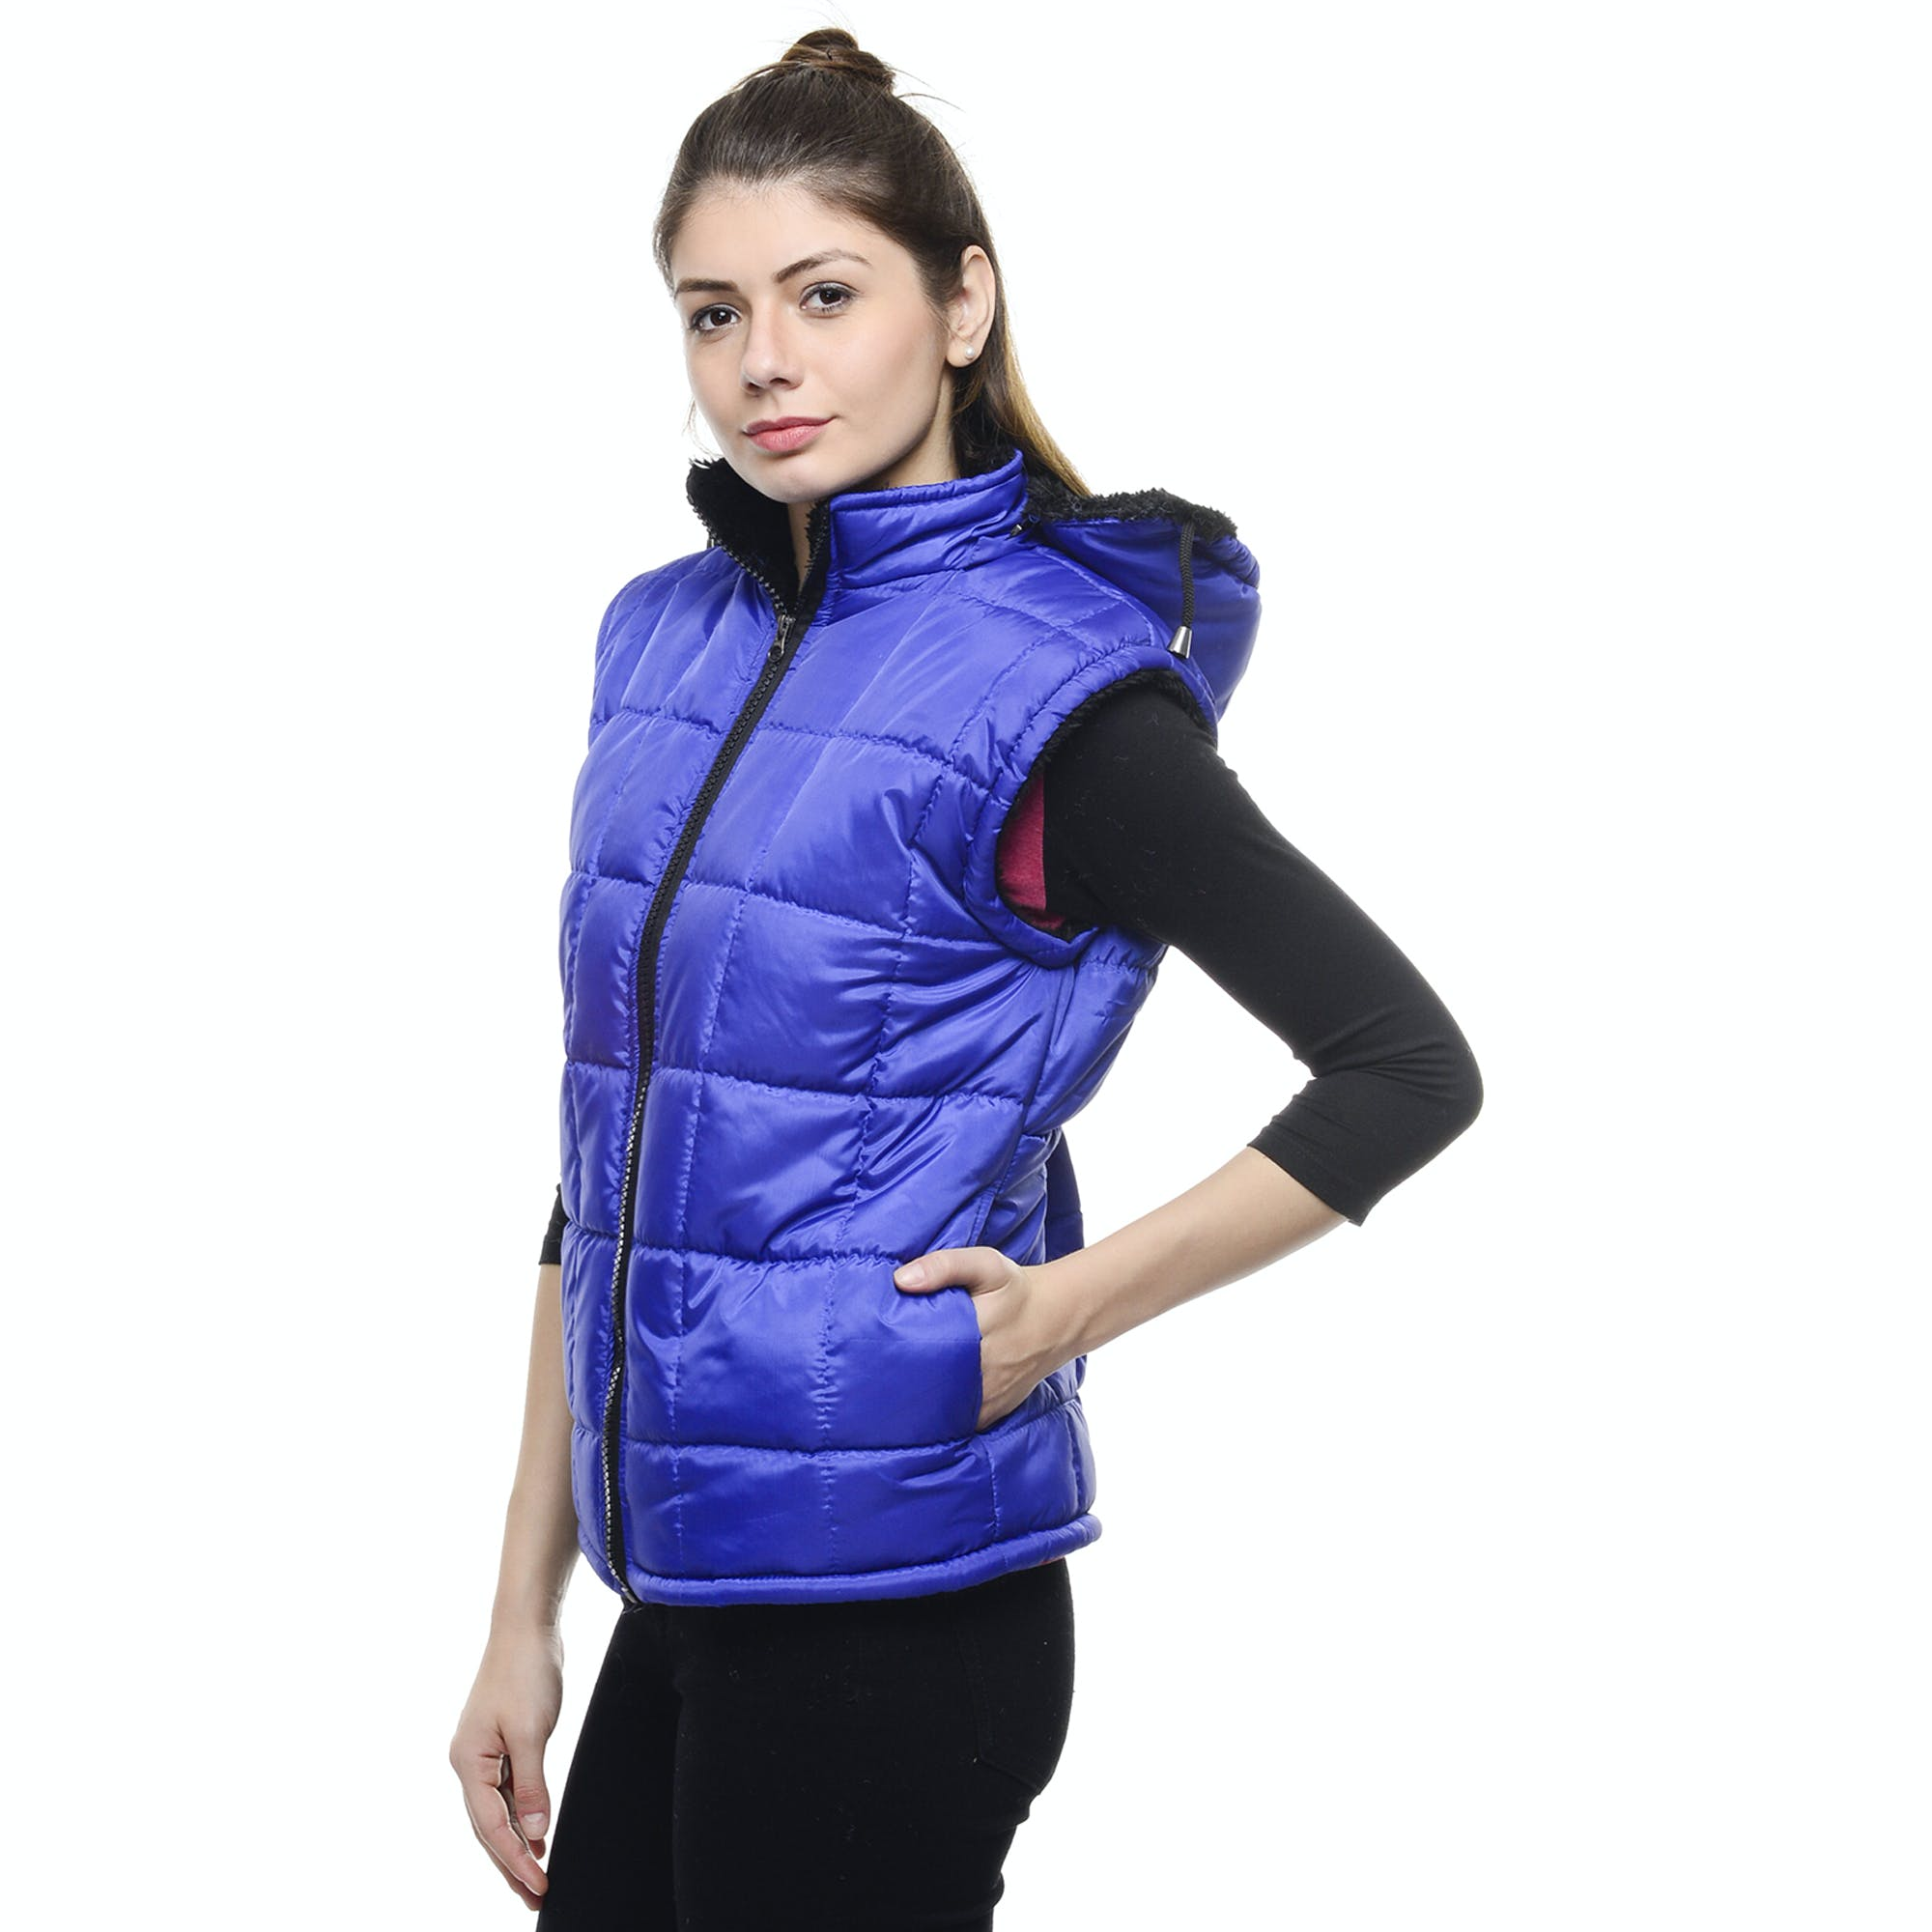 Woman Wearing Blue Zip Up Vest